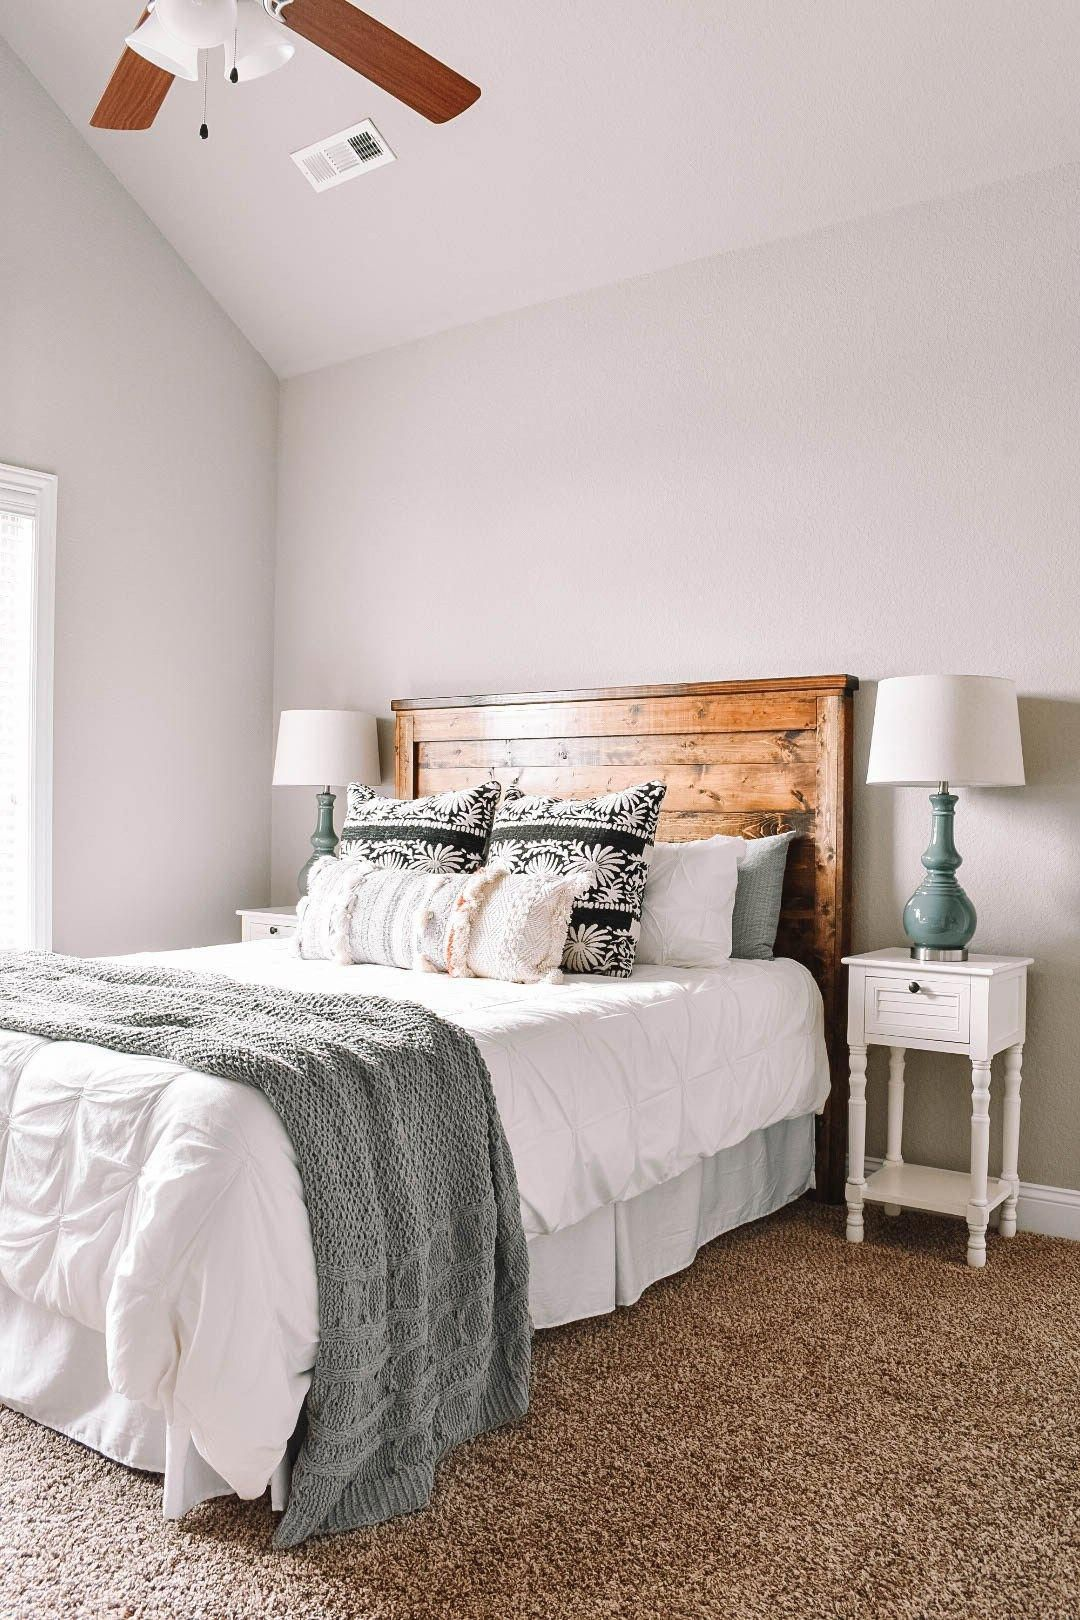 Home Office and Guest Bedroom Tour. #homeoffice #guestbedroom #bohostyle #girly #homeblog #homedecor #modernBedroom